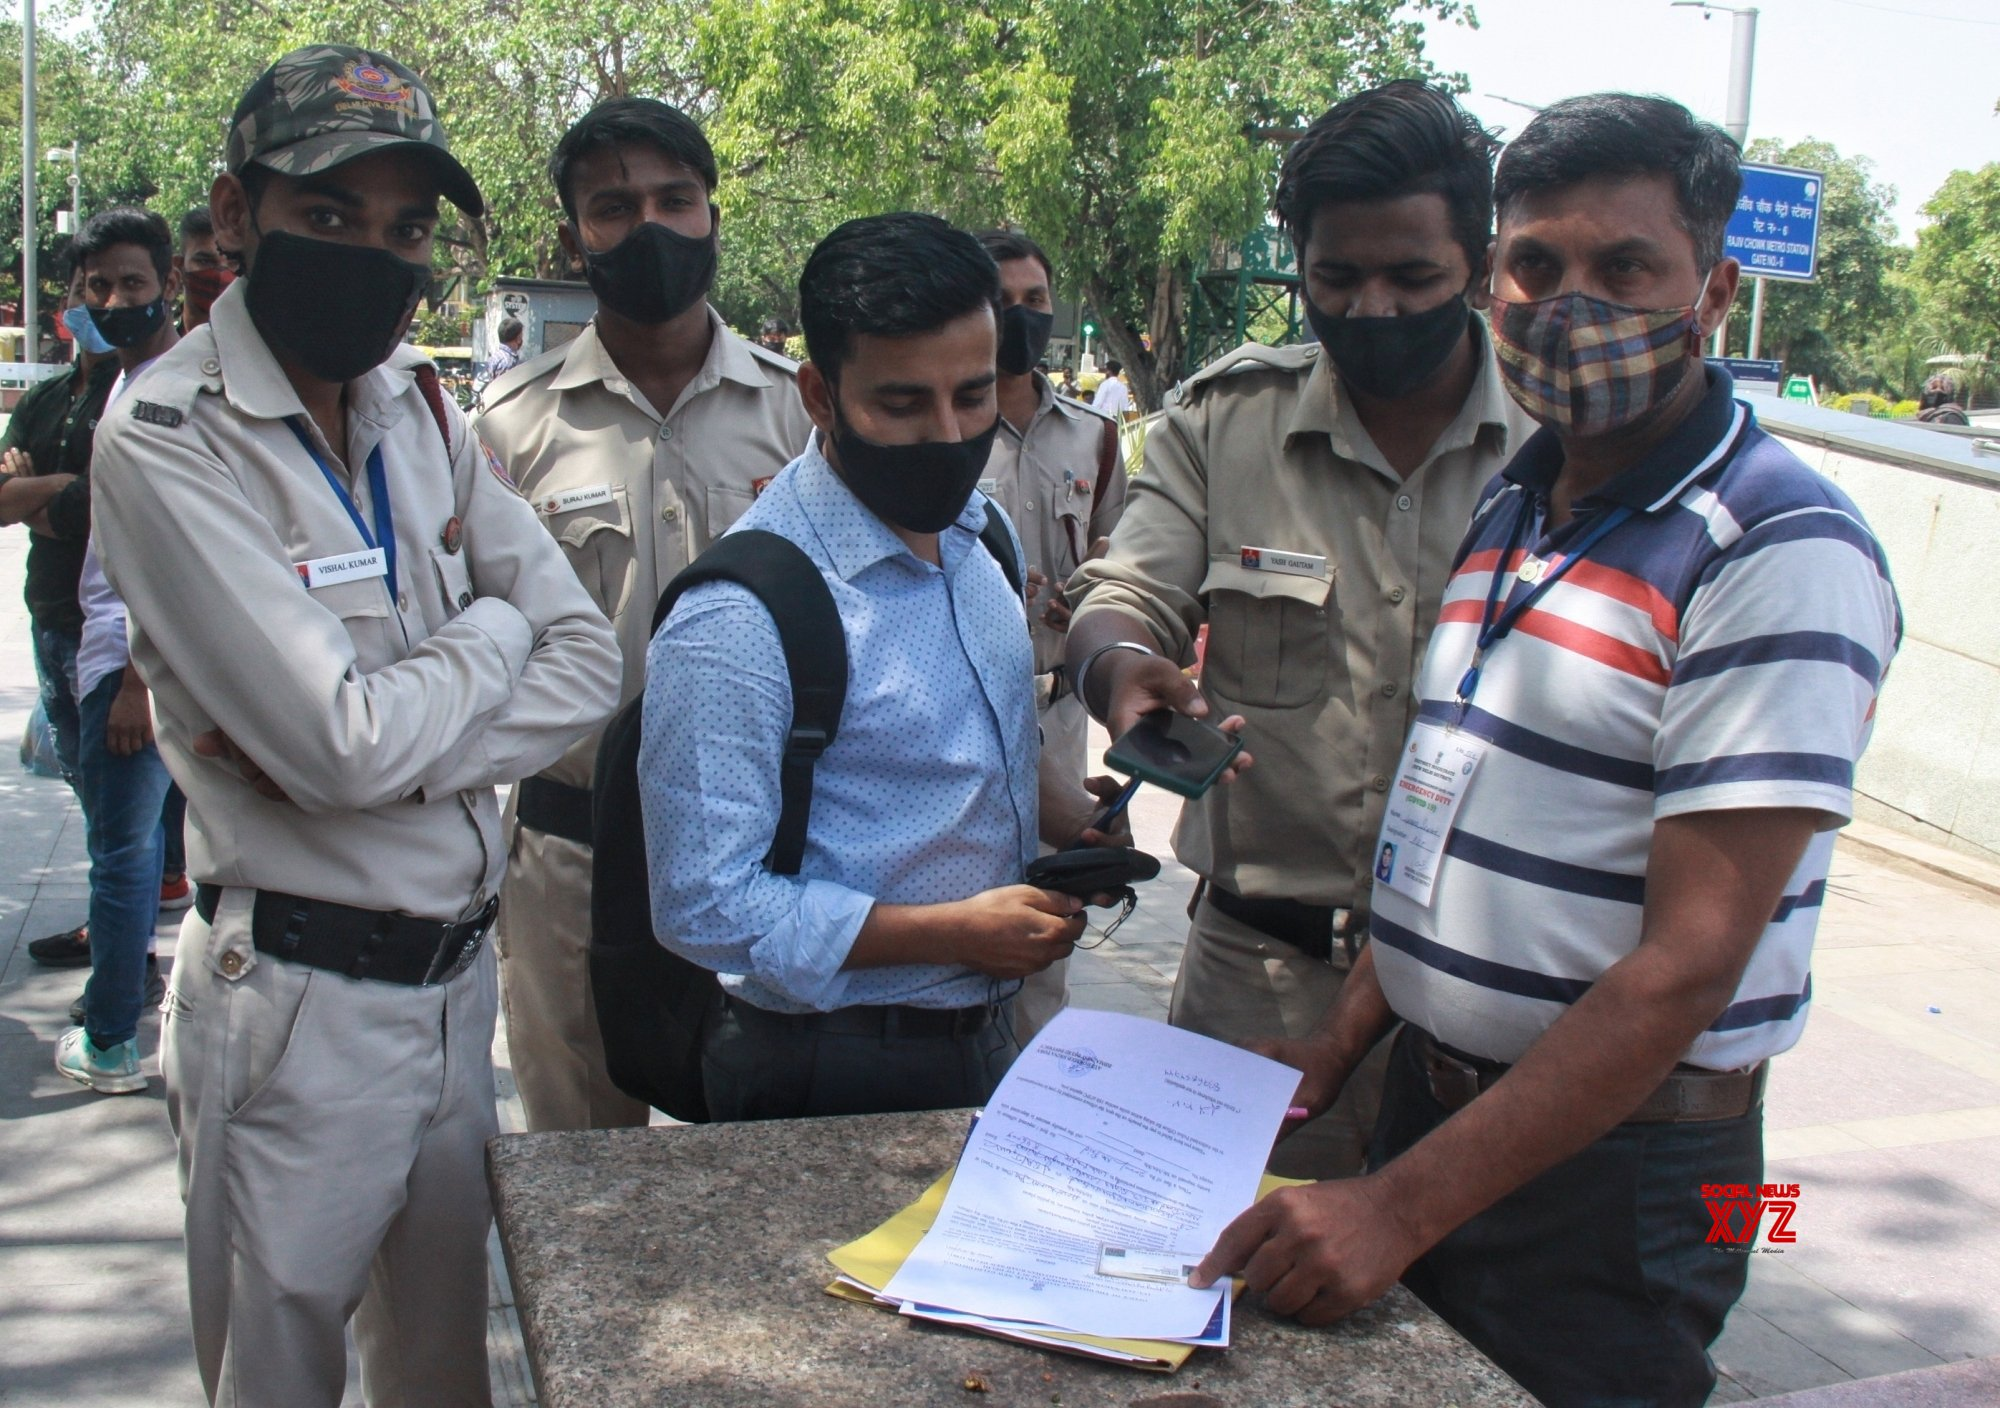 New Delhi: Delhi Civil Defence have issued challans 2000 - Rs for not wearing proper mask in public place for violation of Covid - 19 at Counnought place in new Delhi on Thursday April 08, 2021. #Gallery